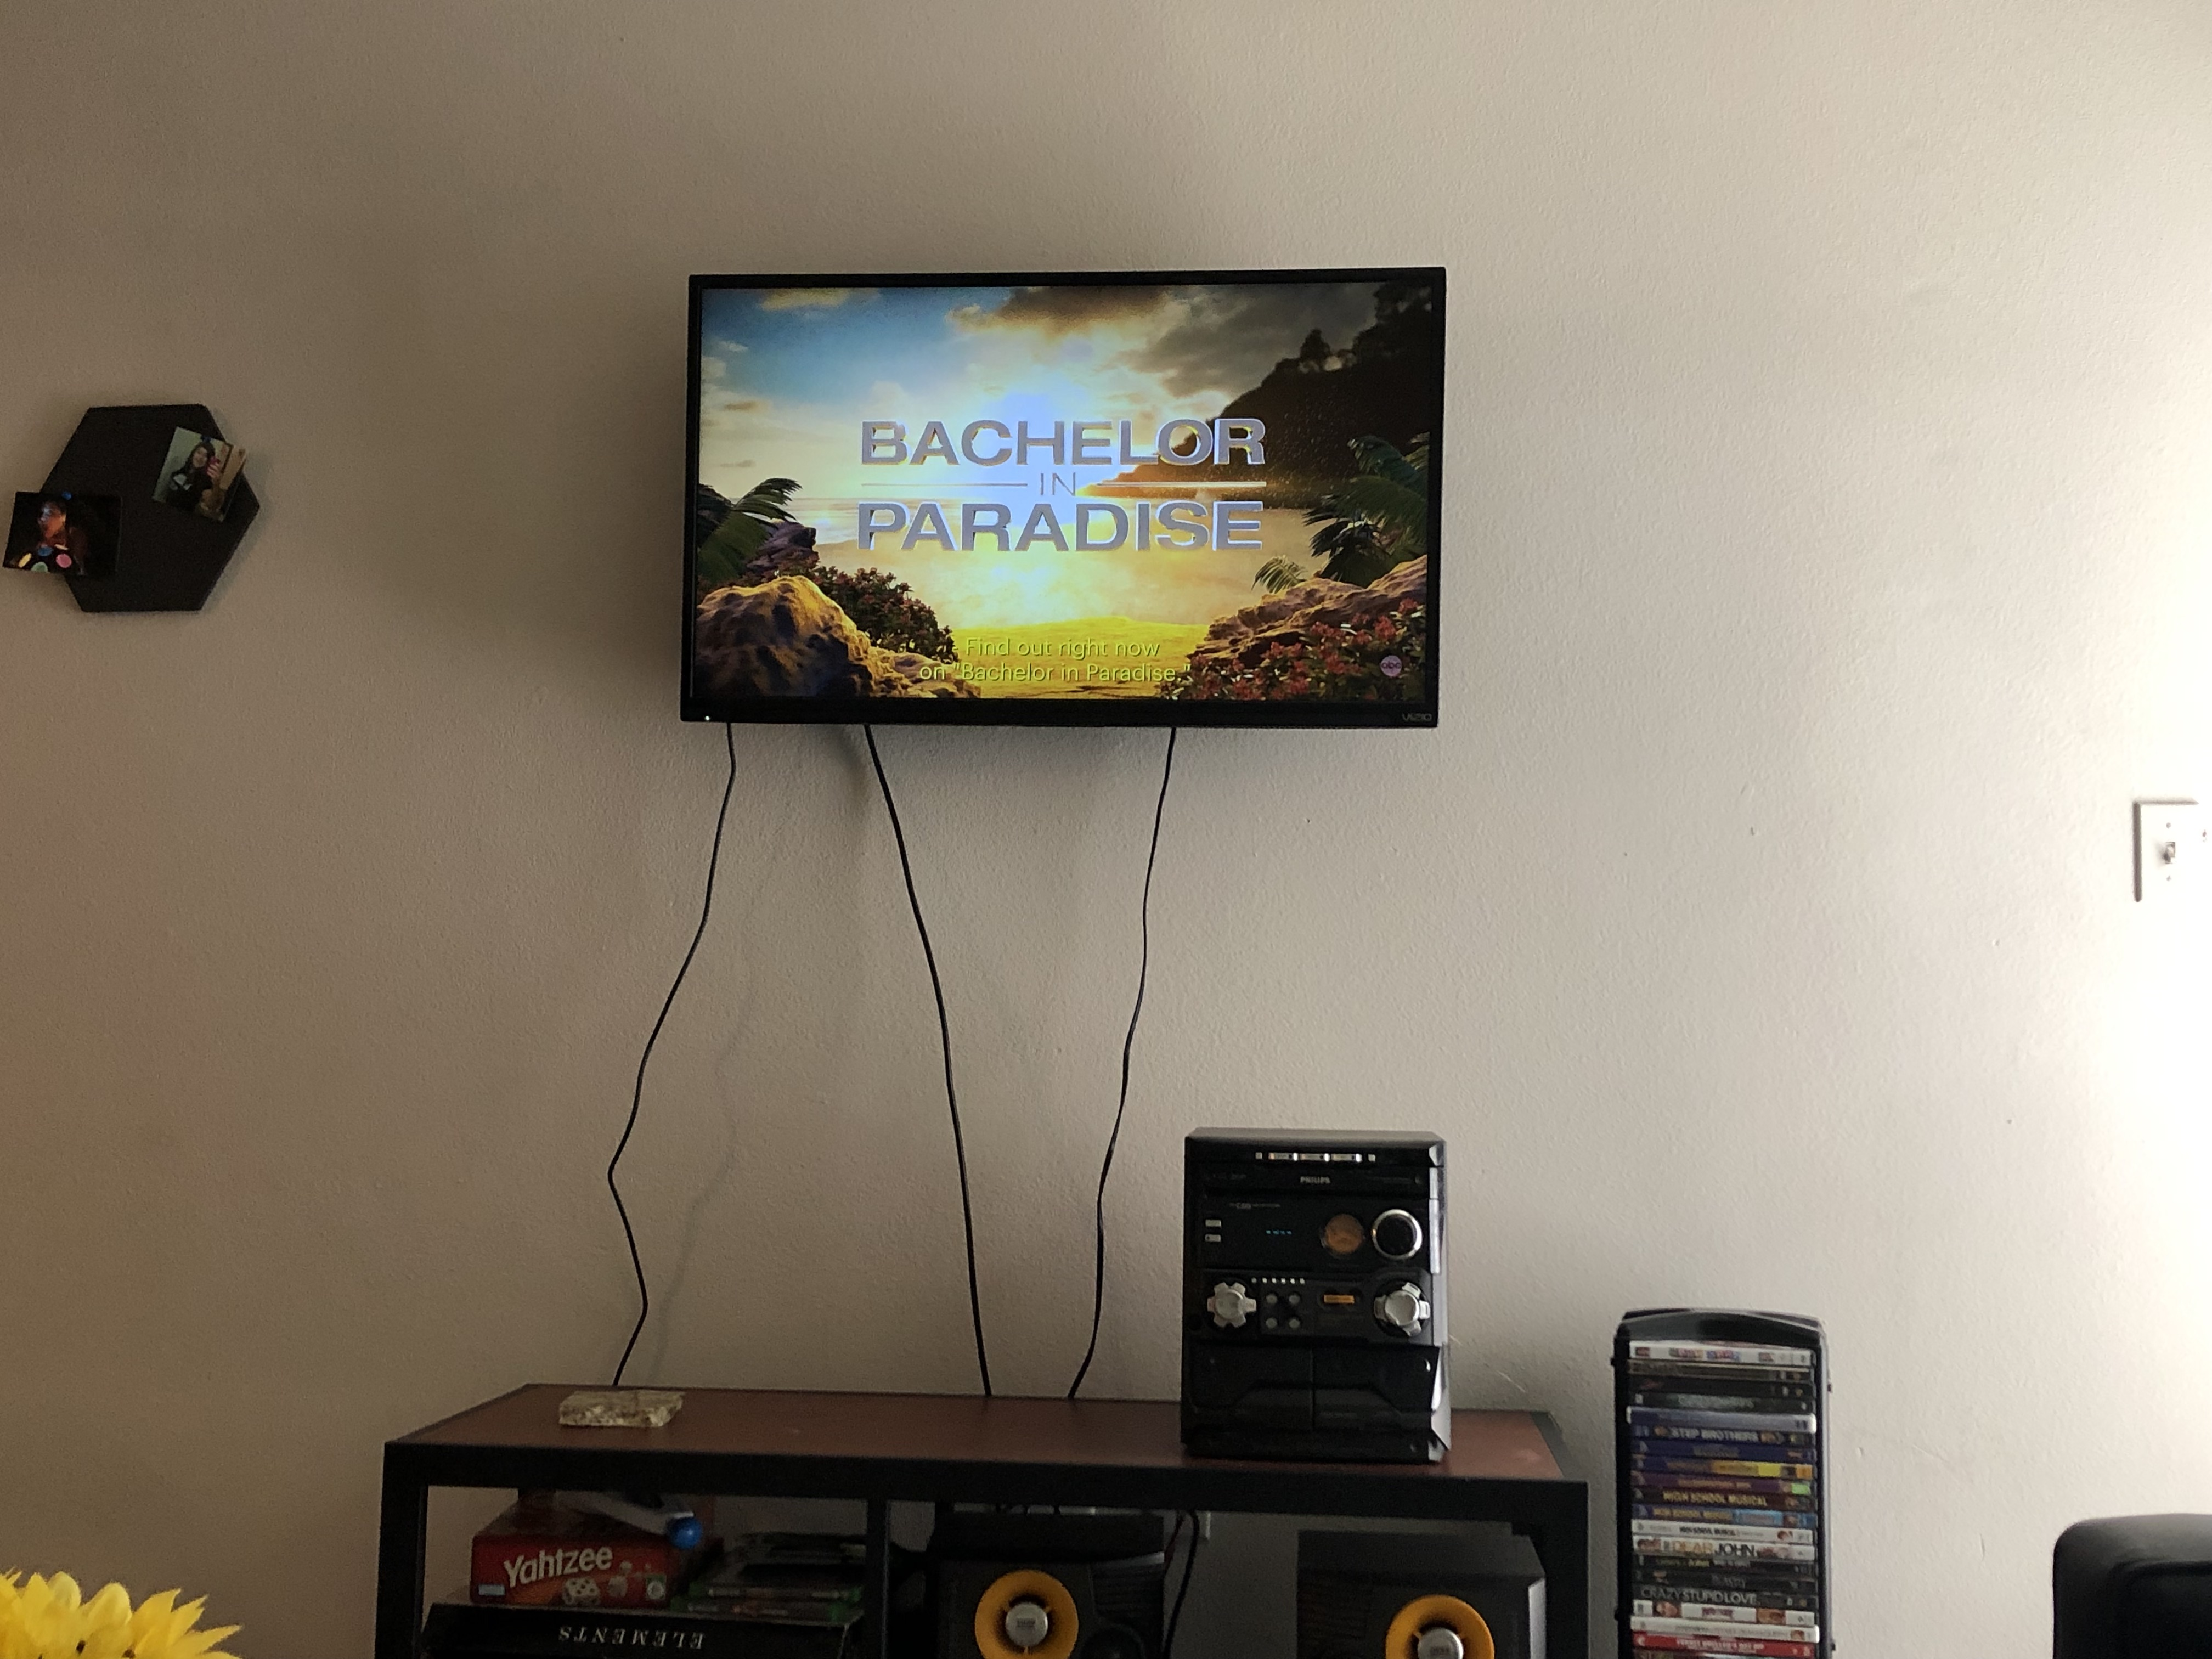 TV screen has the Bachelor in Paradise title screen. There is a coffee table with a stereo and a DVD stand.